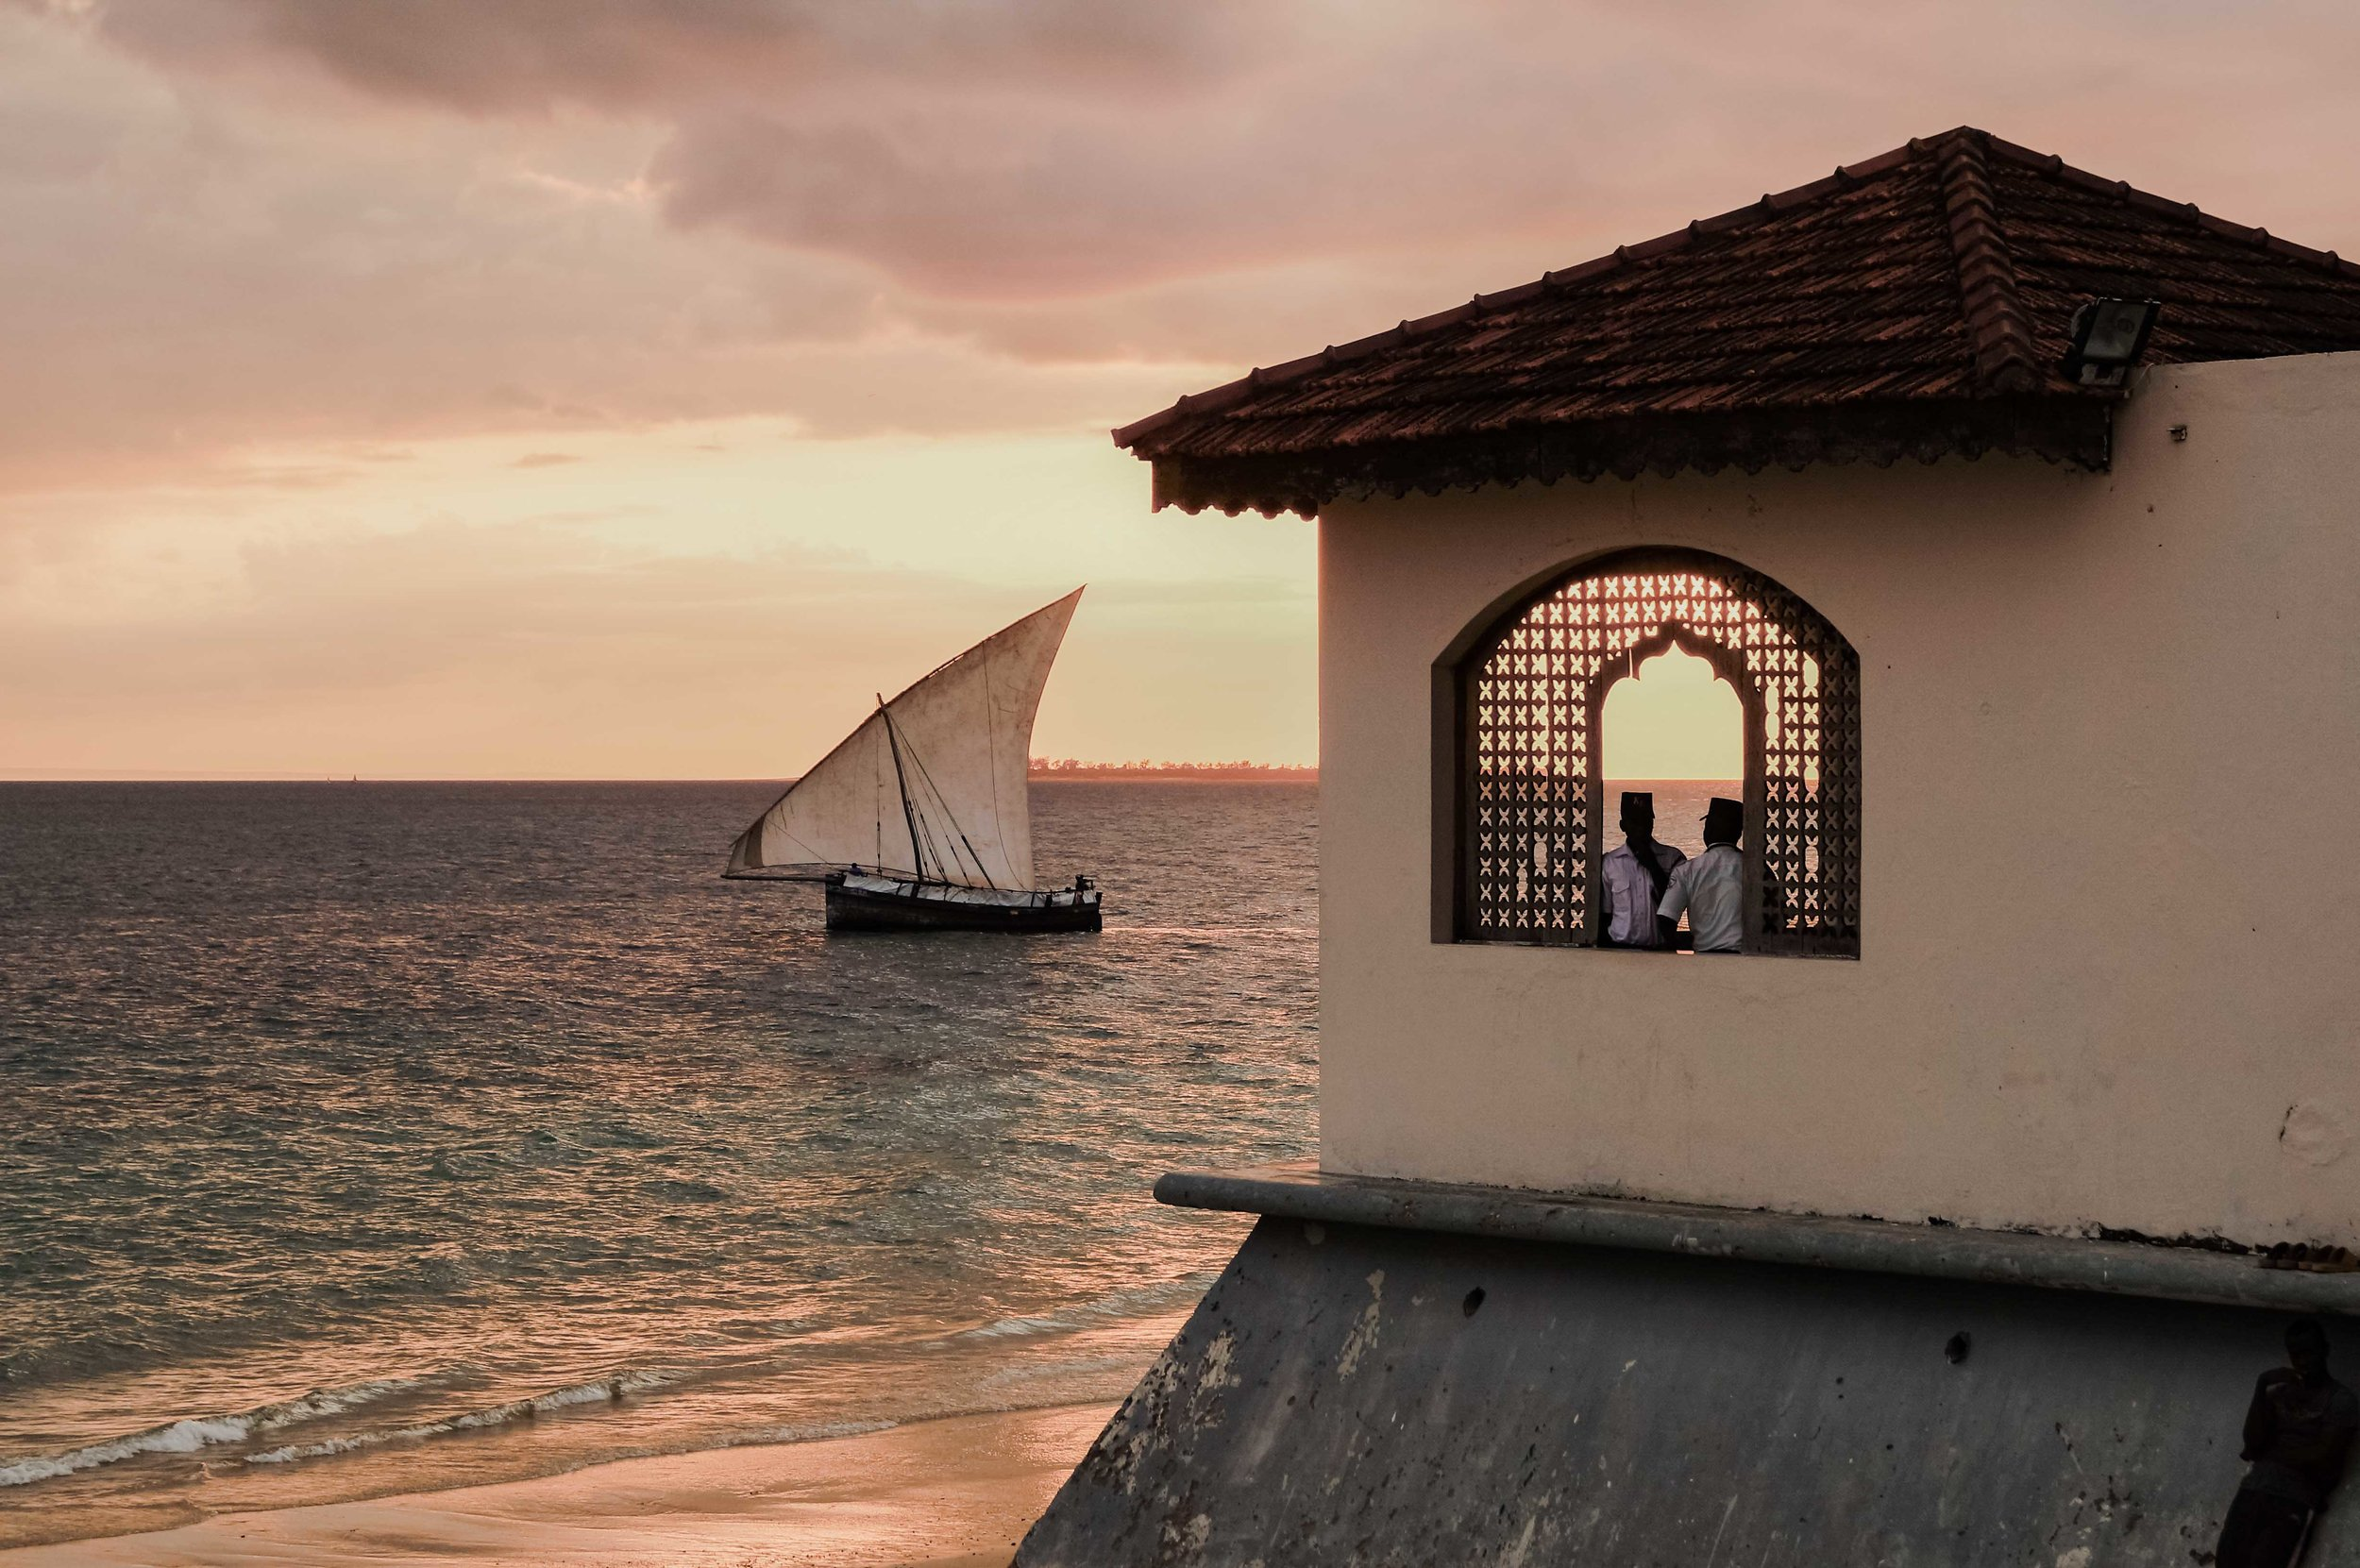 As sun sets the dhow boats glide back to port across the golden waters